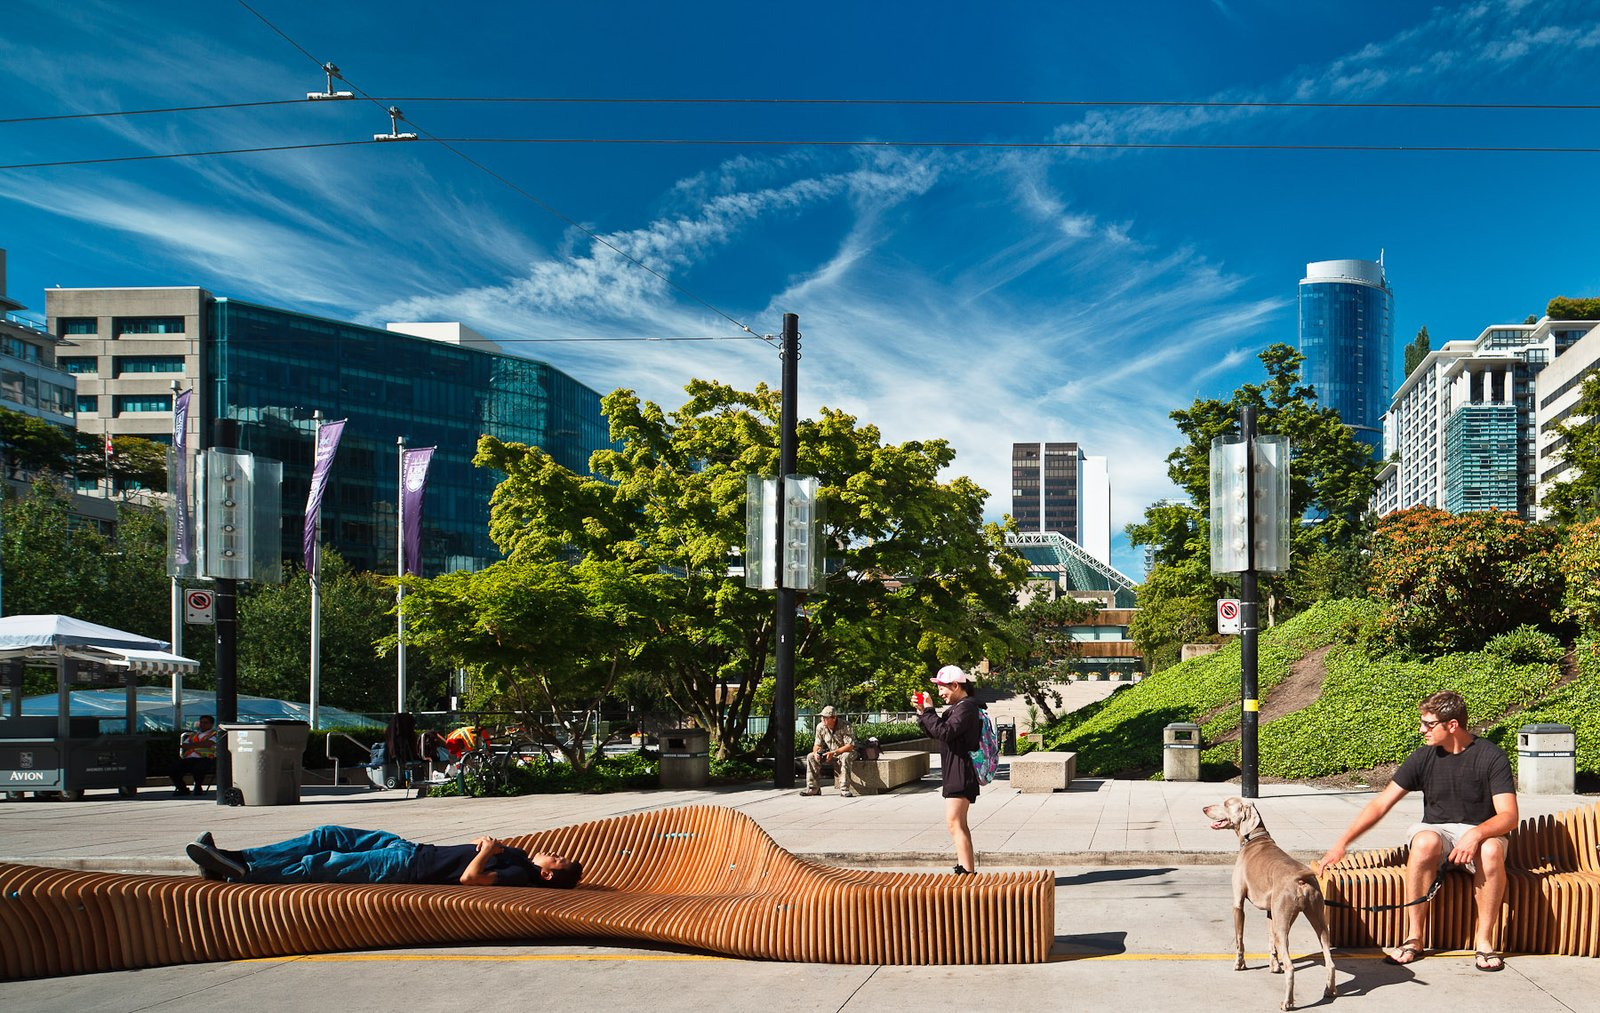 #seatingdesign #seating #outside #outdoor #exterior #park #publicpark #bench #VIVAVancouver #Vancouver #UrbanReef #relax   Courtesy of Latreille Delage Photography  100+ Best Modern Seating Designs